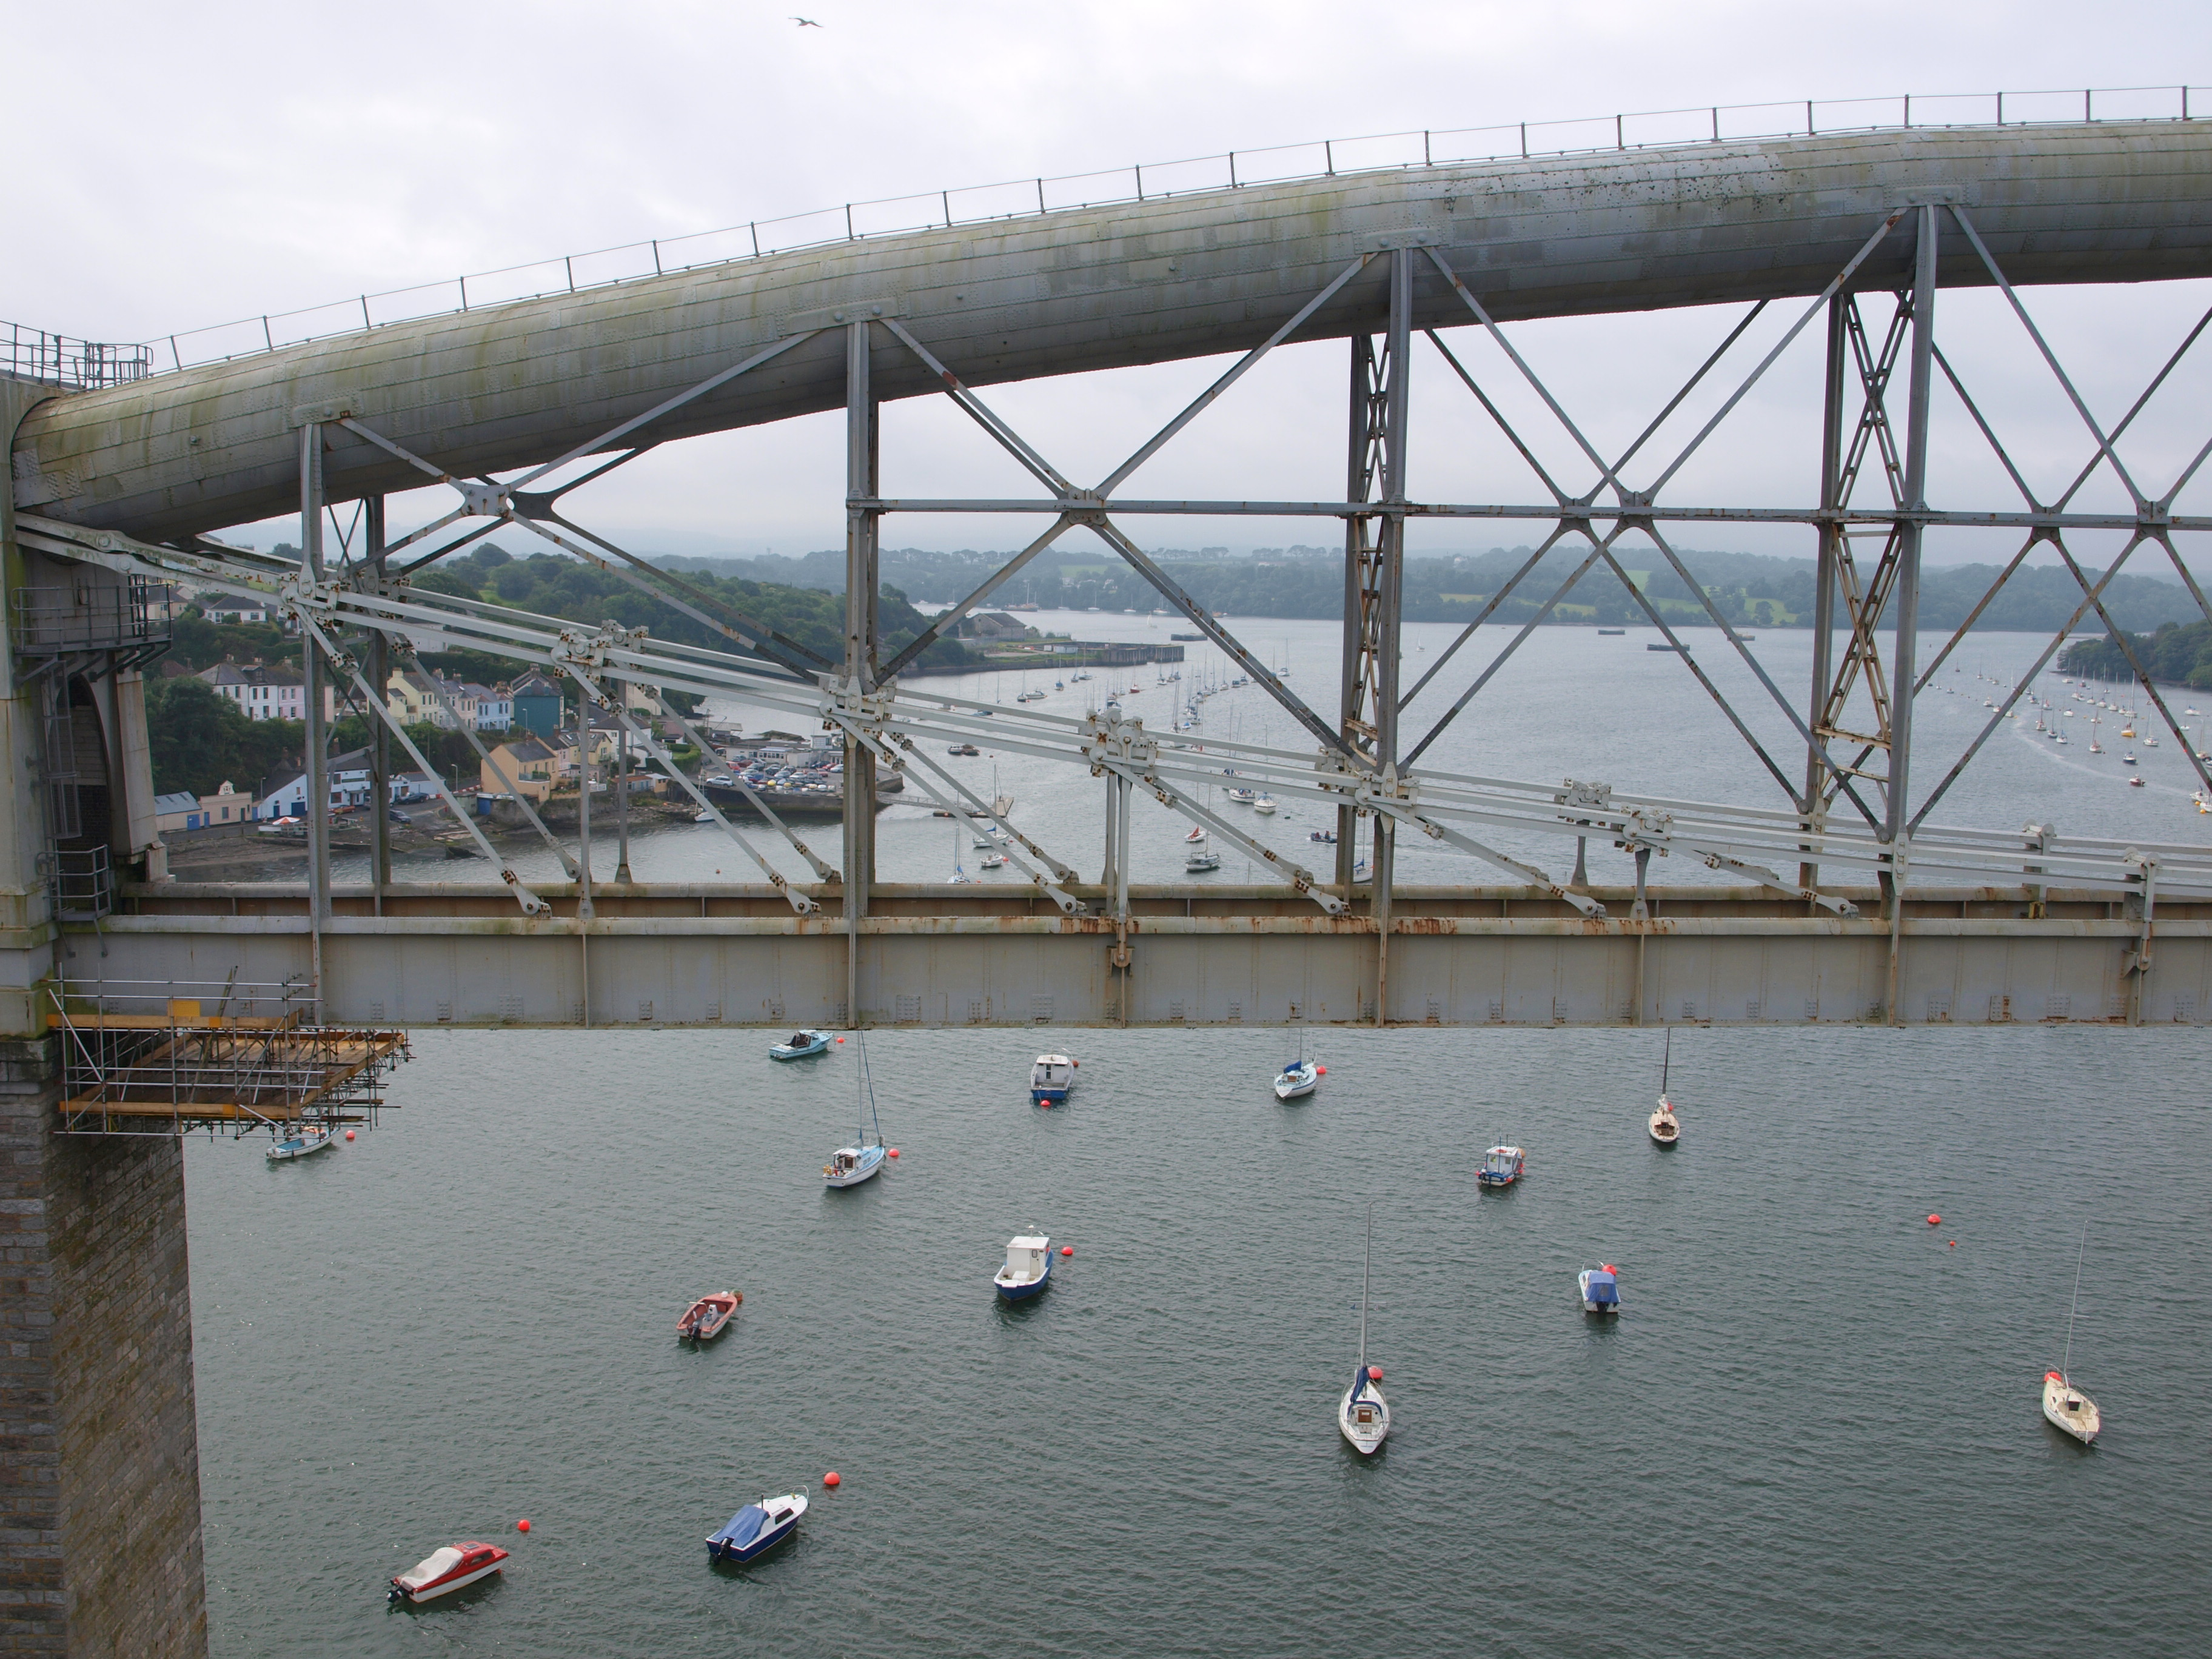 Puente Royal Albert Bridge (Saltash, Reino Unido)